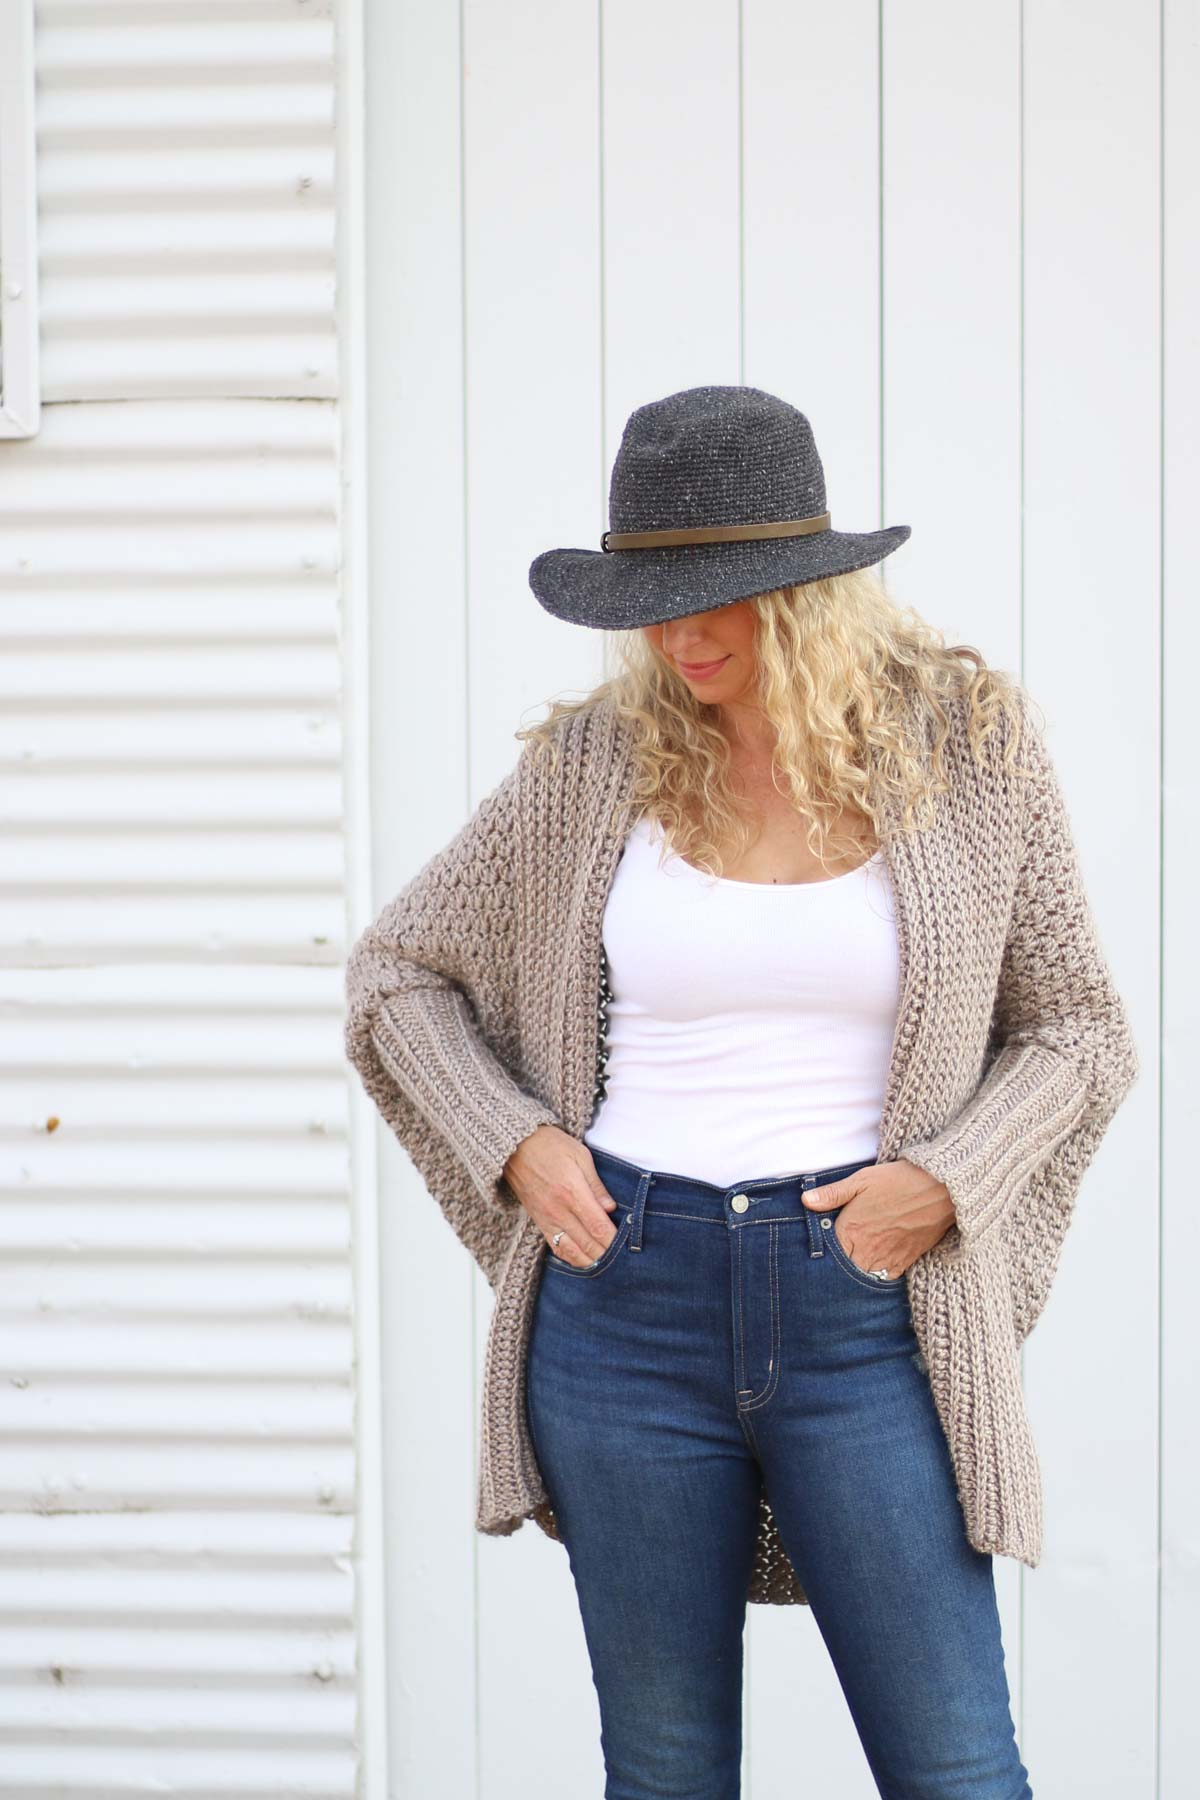 A blonde woman wearing an oversized, baggy modern crochet cardigan. This free crochet cardigan pattern is very easy thanks to the sweater being crocheted from a simple rectangle.